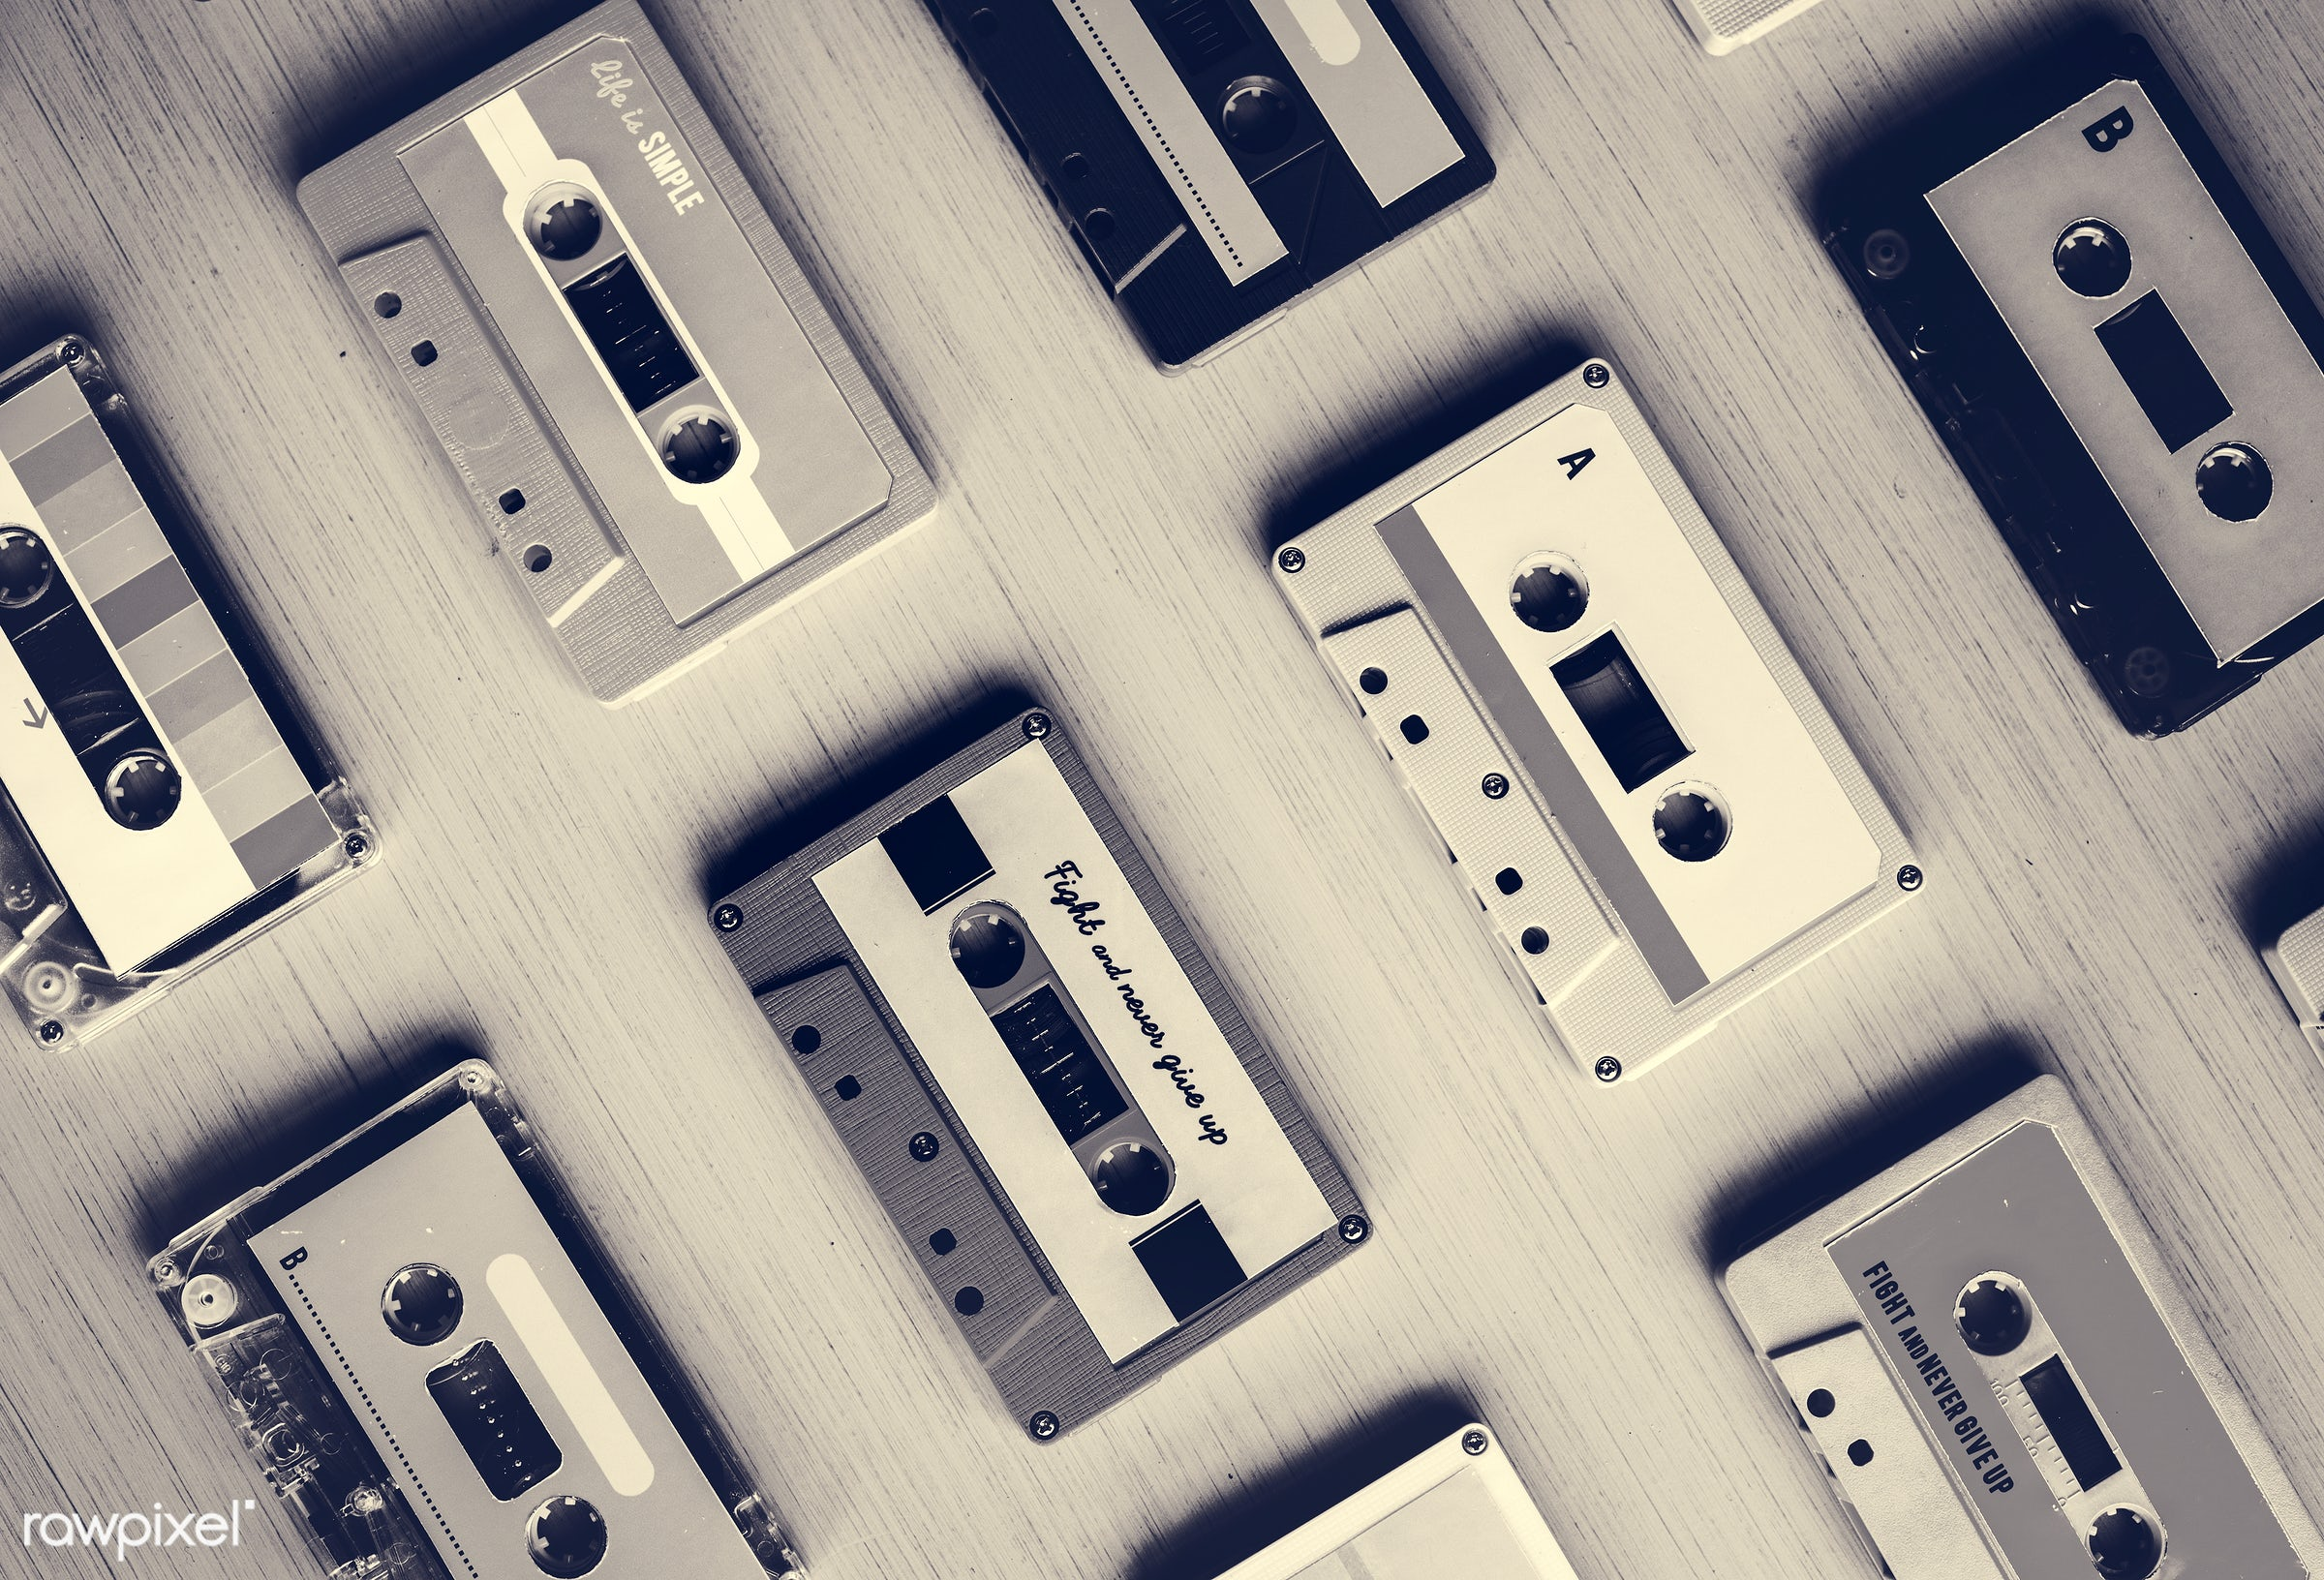 rehearsal, 80s, song, old, music taste, relax, set, retro, tape, feels, equipment, object, collection, recreation, party,...